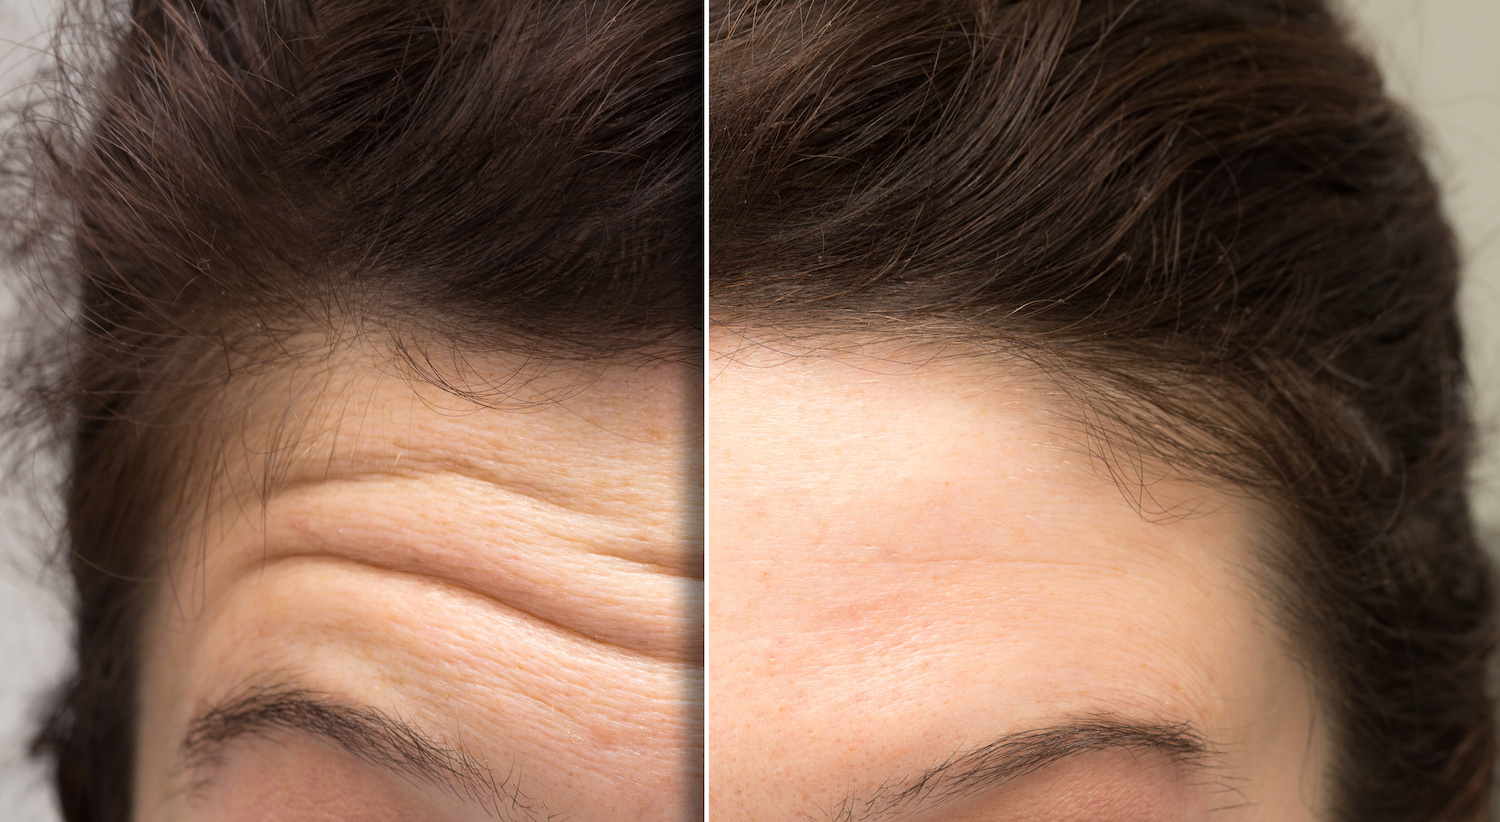 What To Expect From Botox For First Time Botox Users